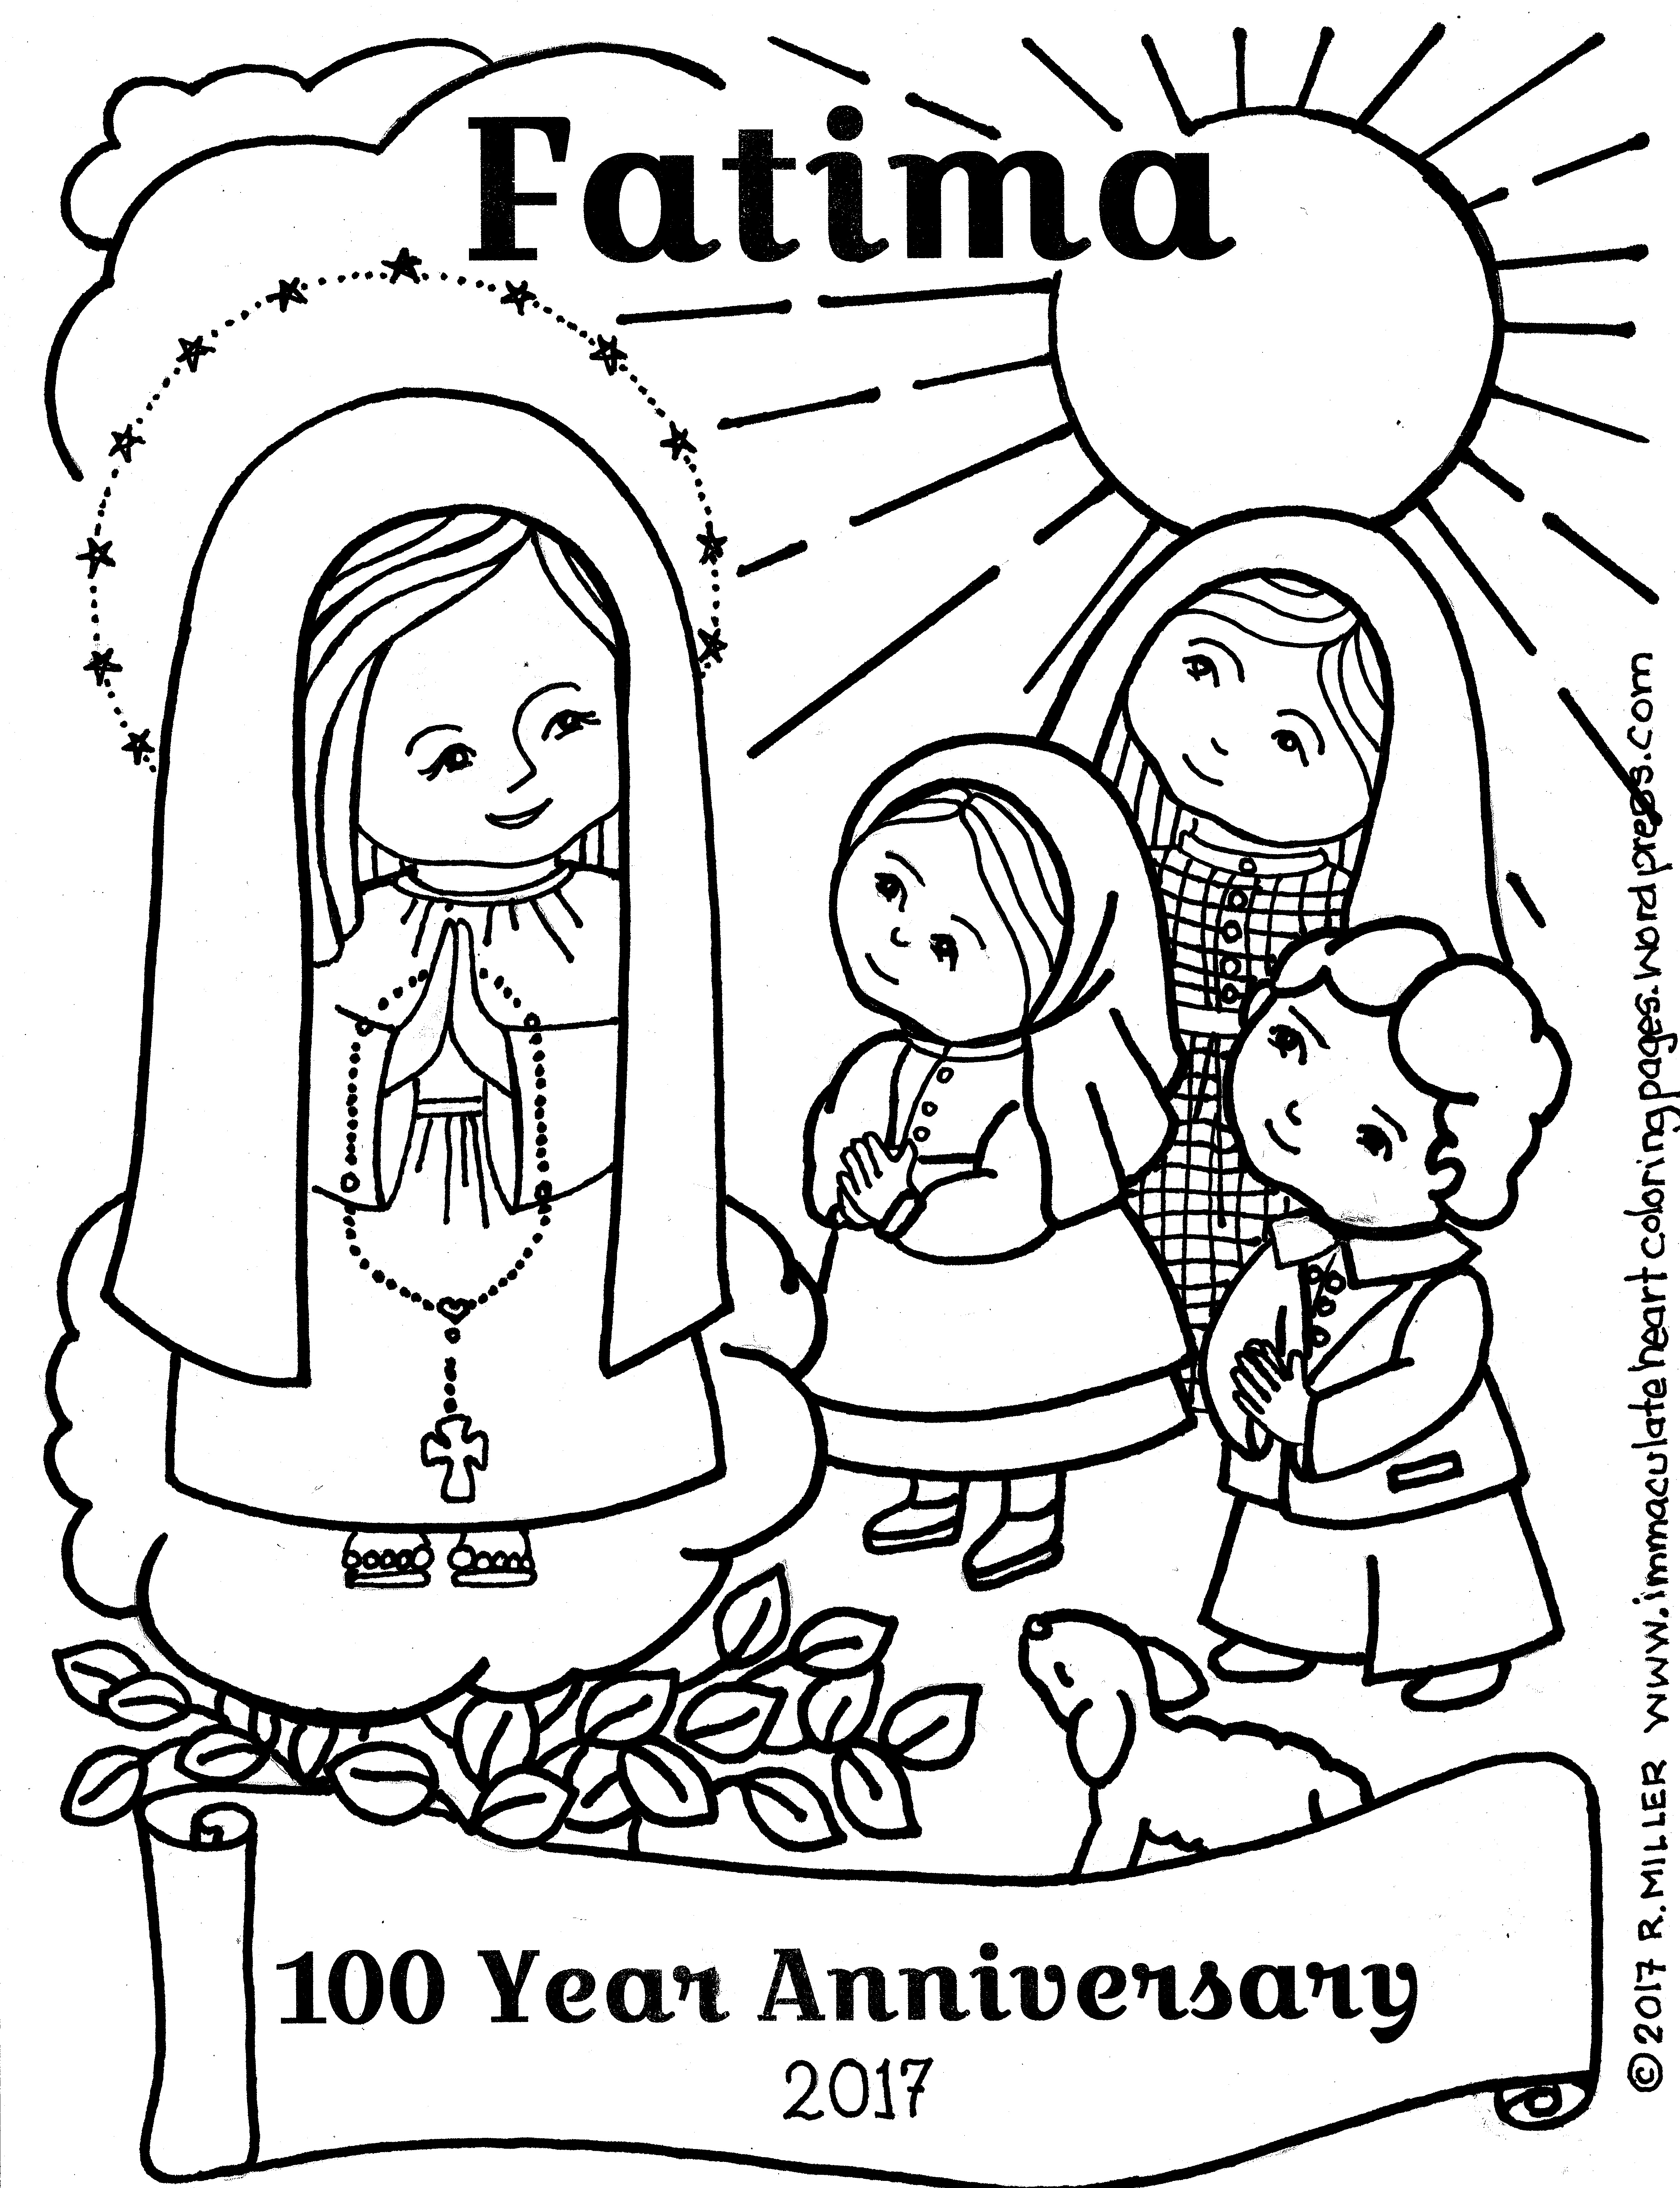 Fatima 100 Year Anniversary Coloring Page Immaculate Heart Coloring Pages